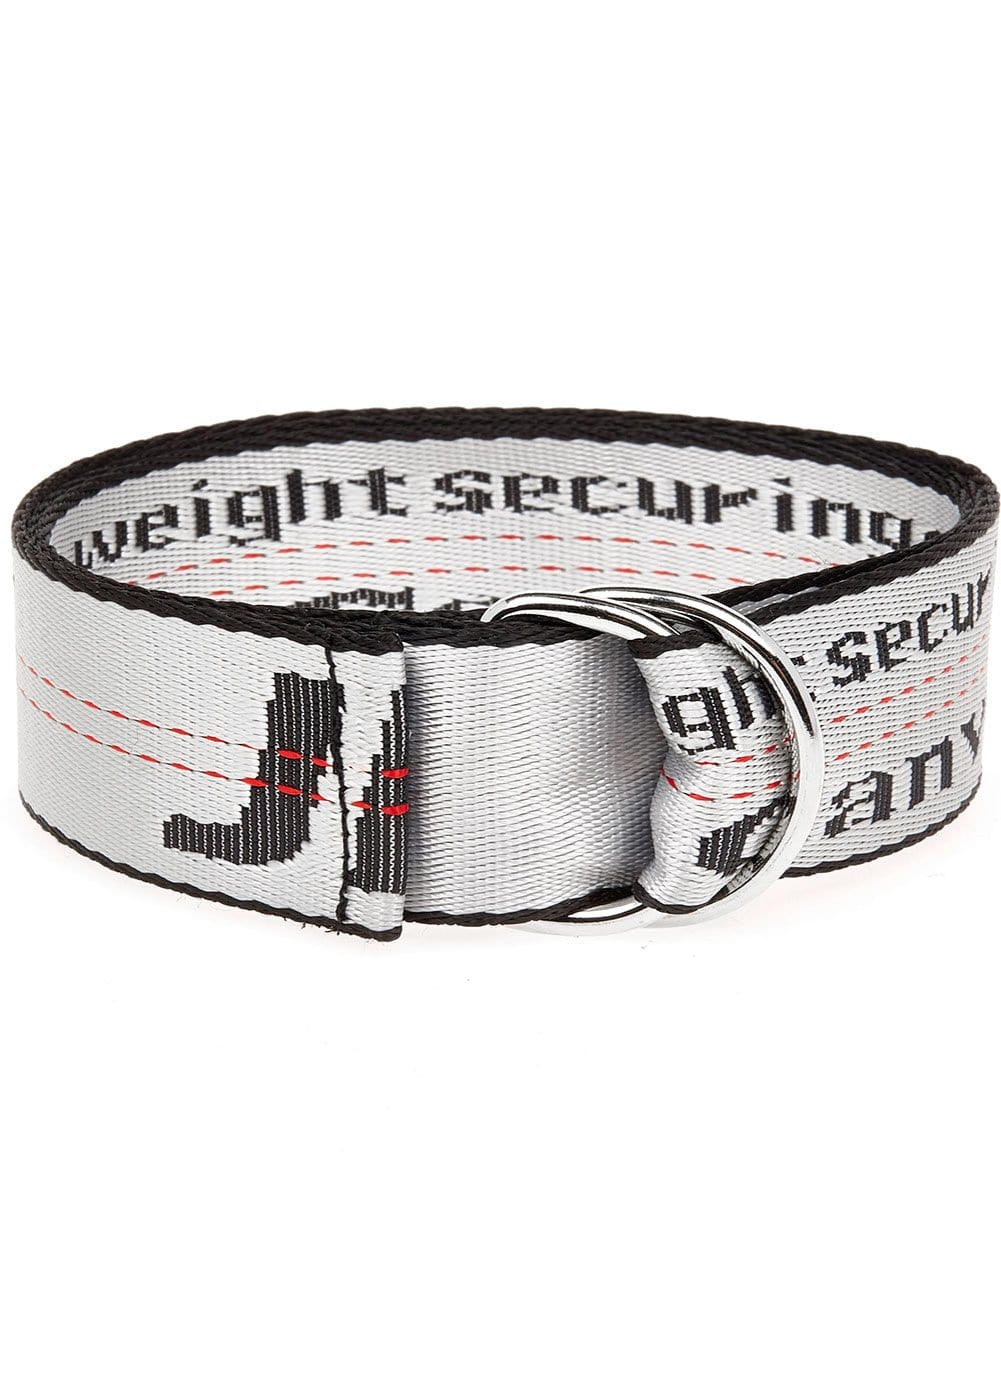 Silver white Tape Belt - Folded